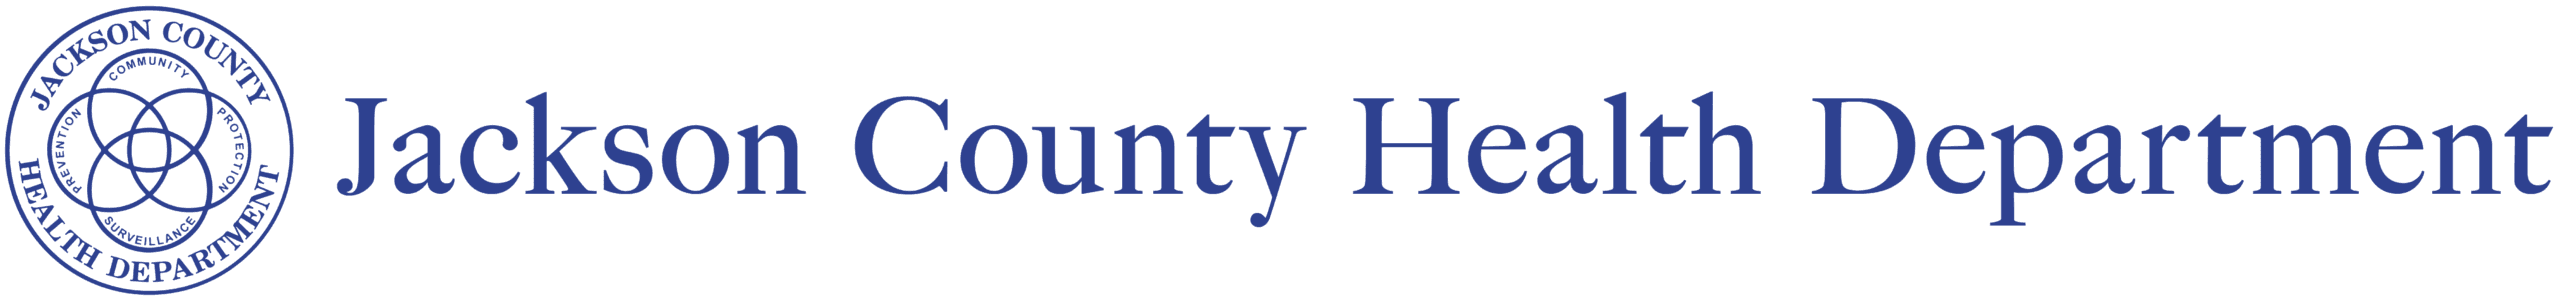 Jackson County Health Department